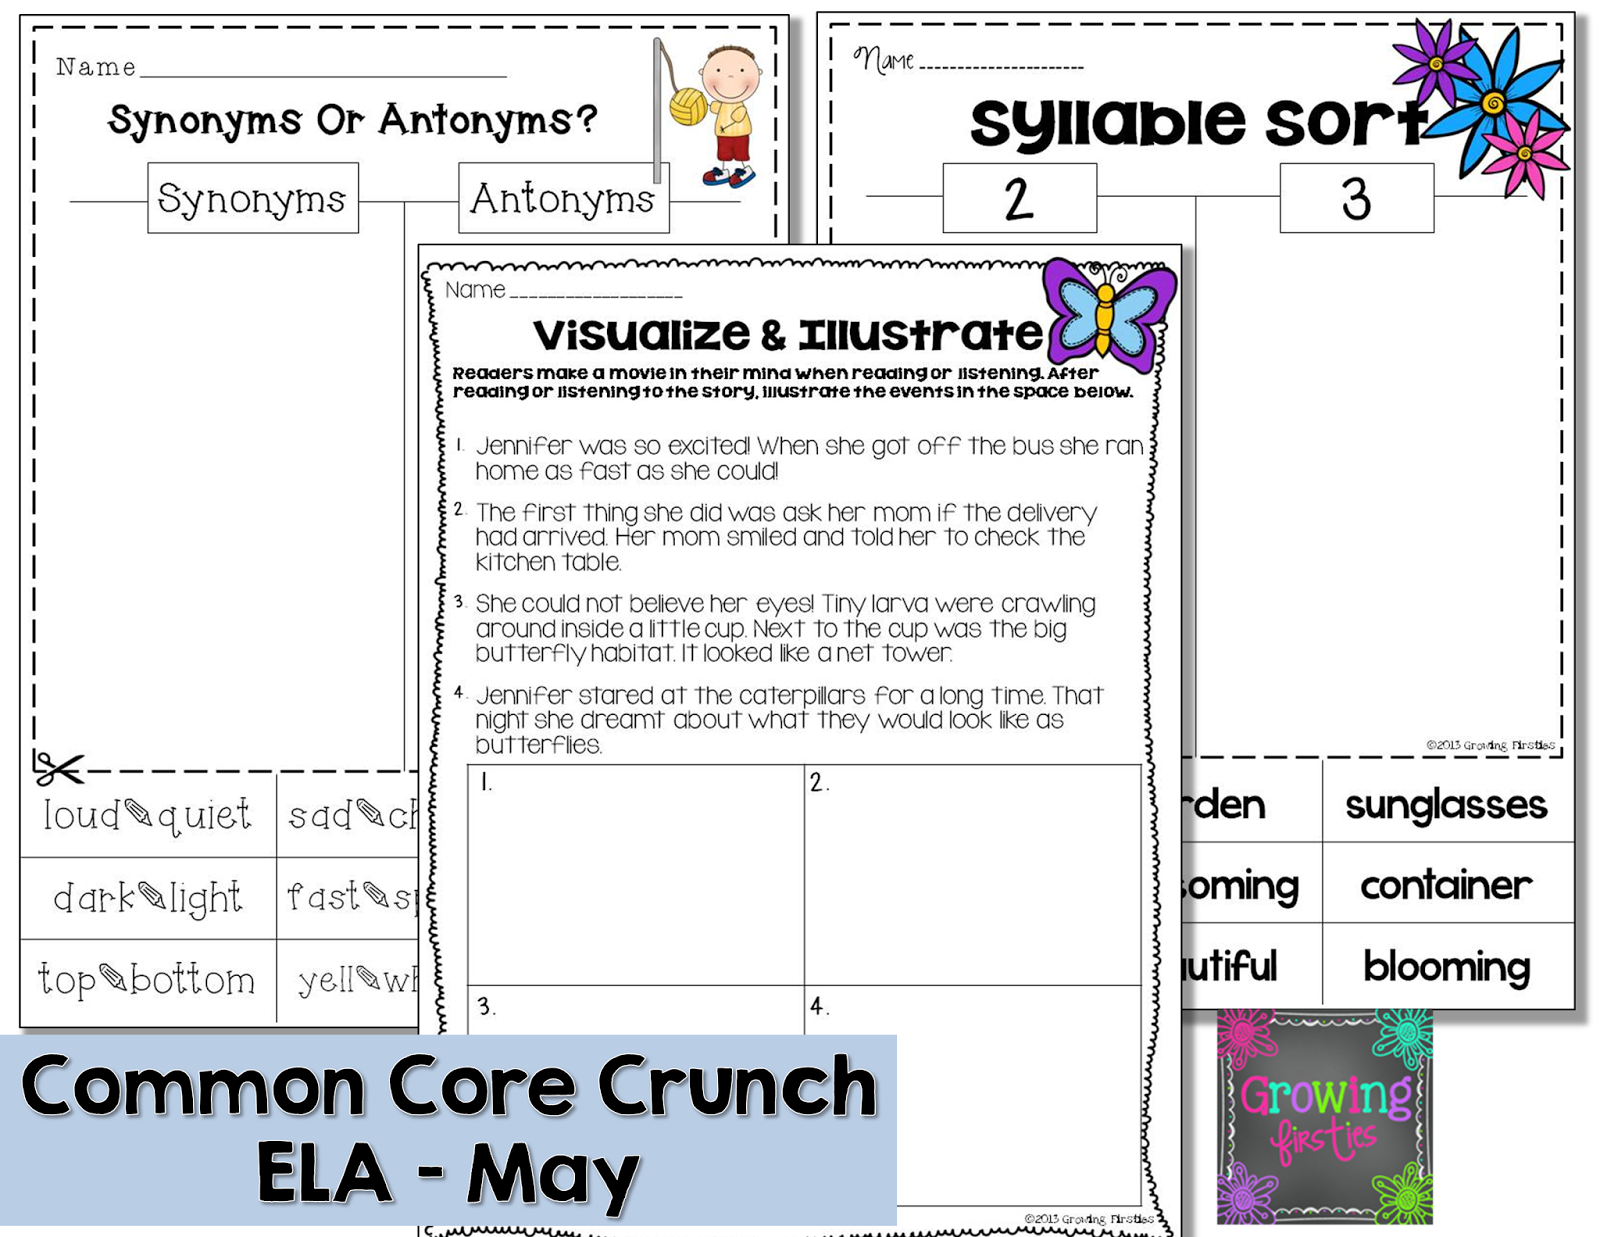 Growing Firsties - Common Core Crunch - May ELA